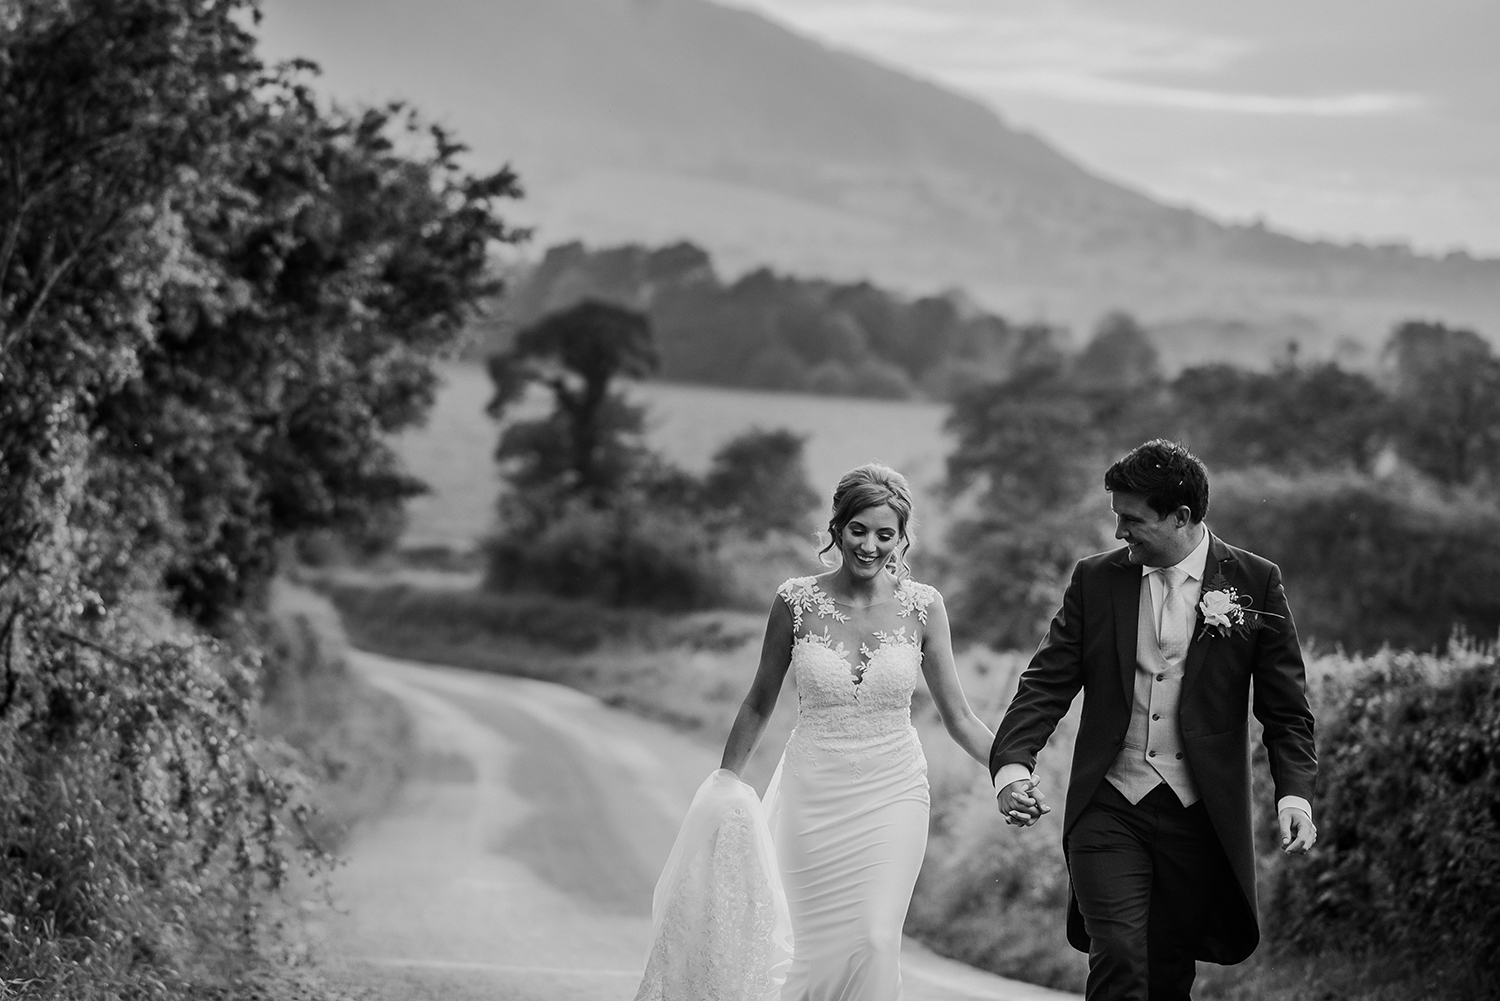 bw photo of bride and groom walking up the path